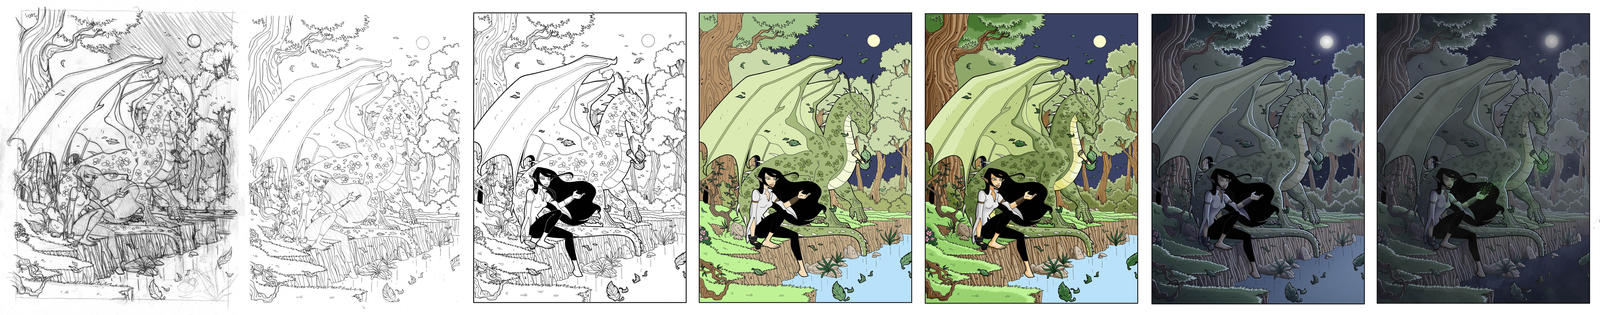 Arya and Firnen_Process